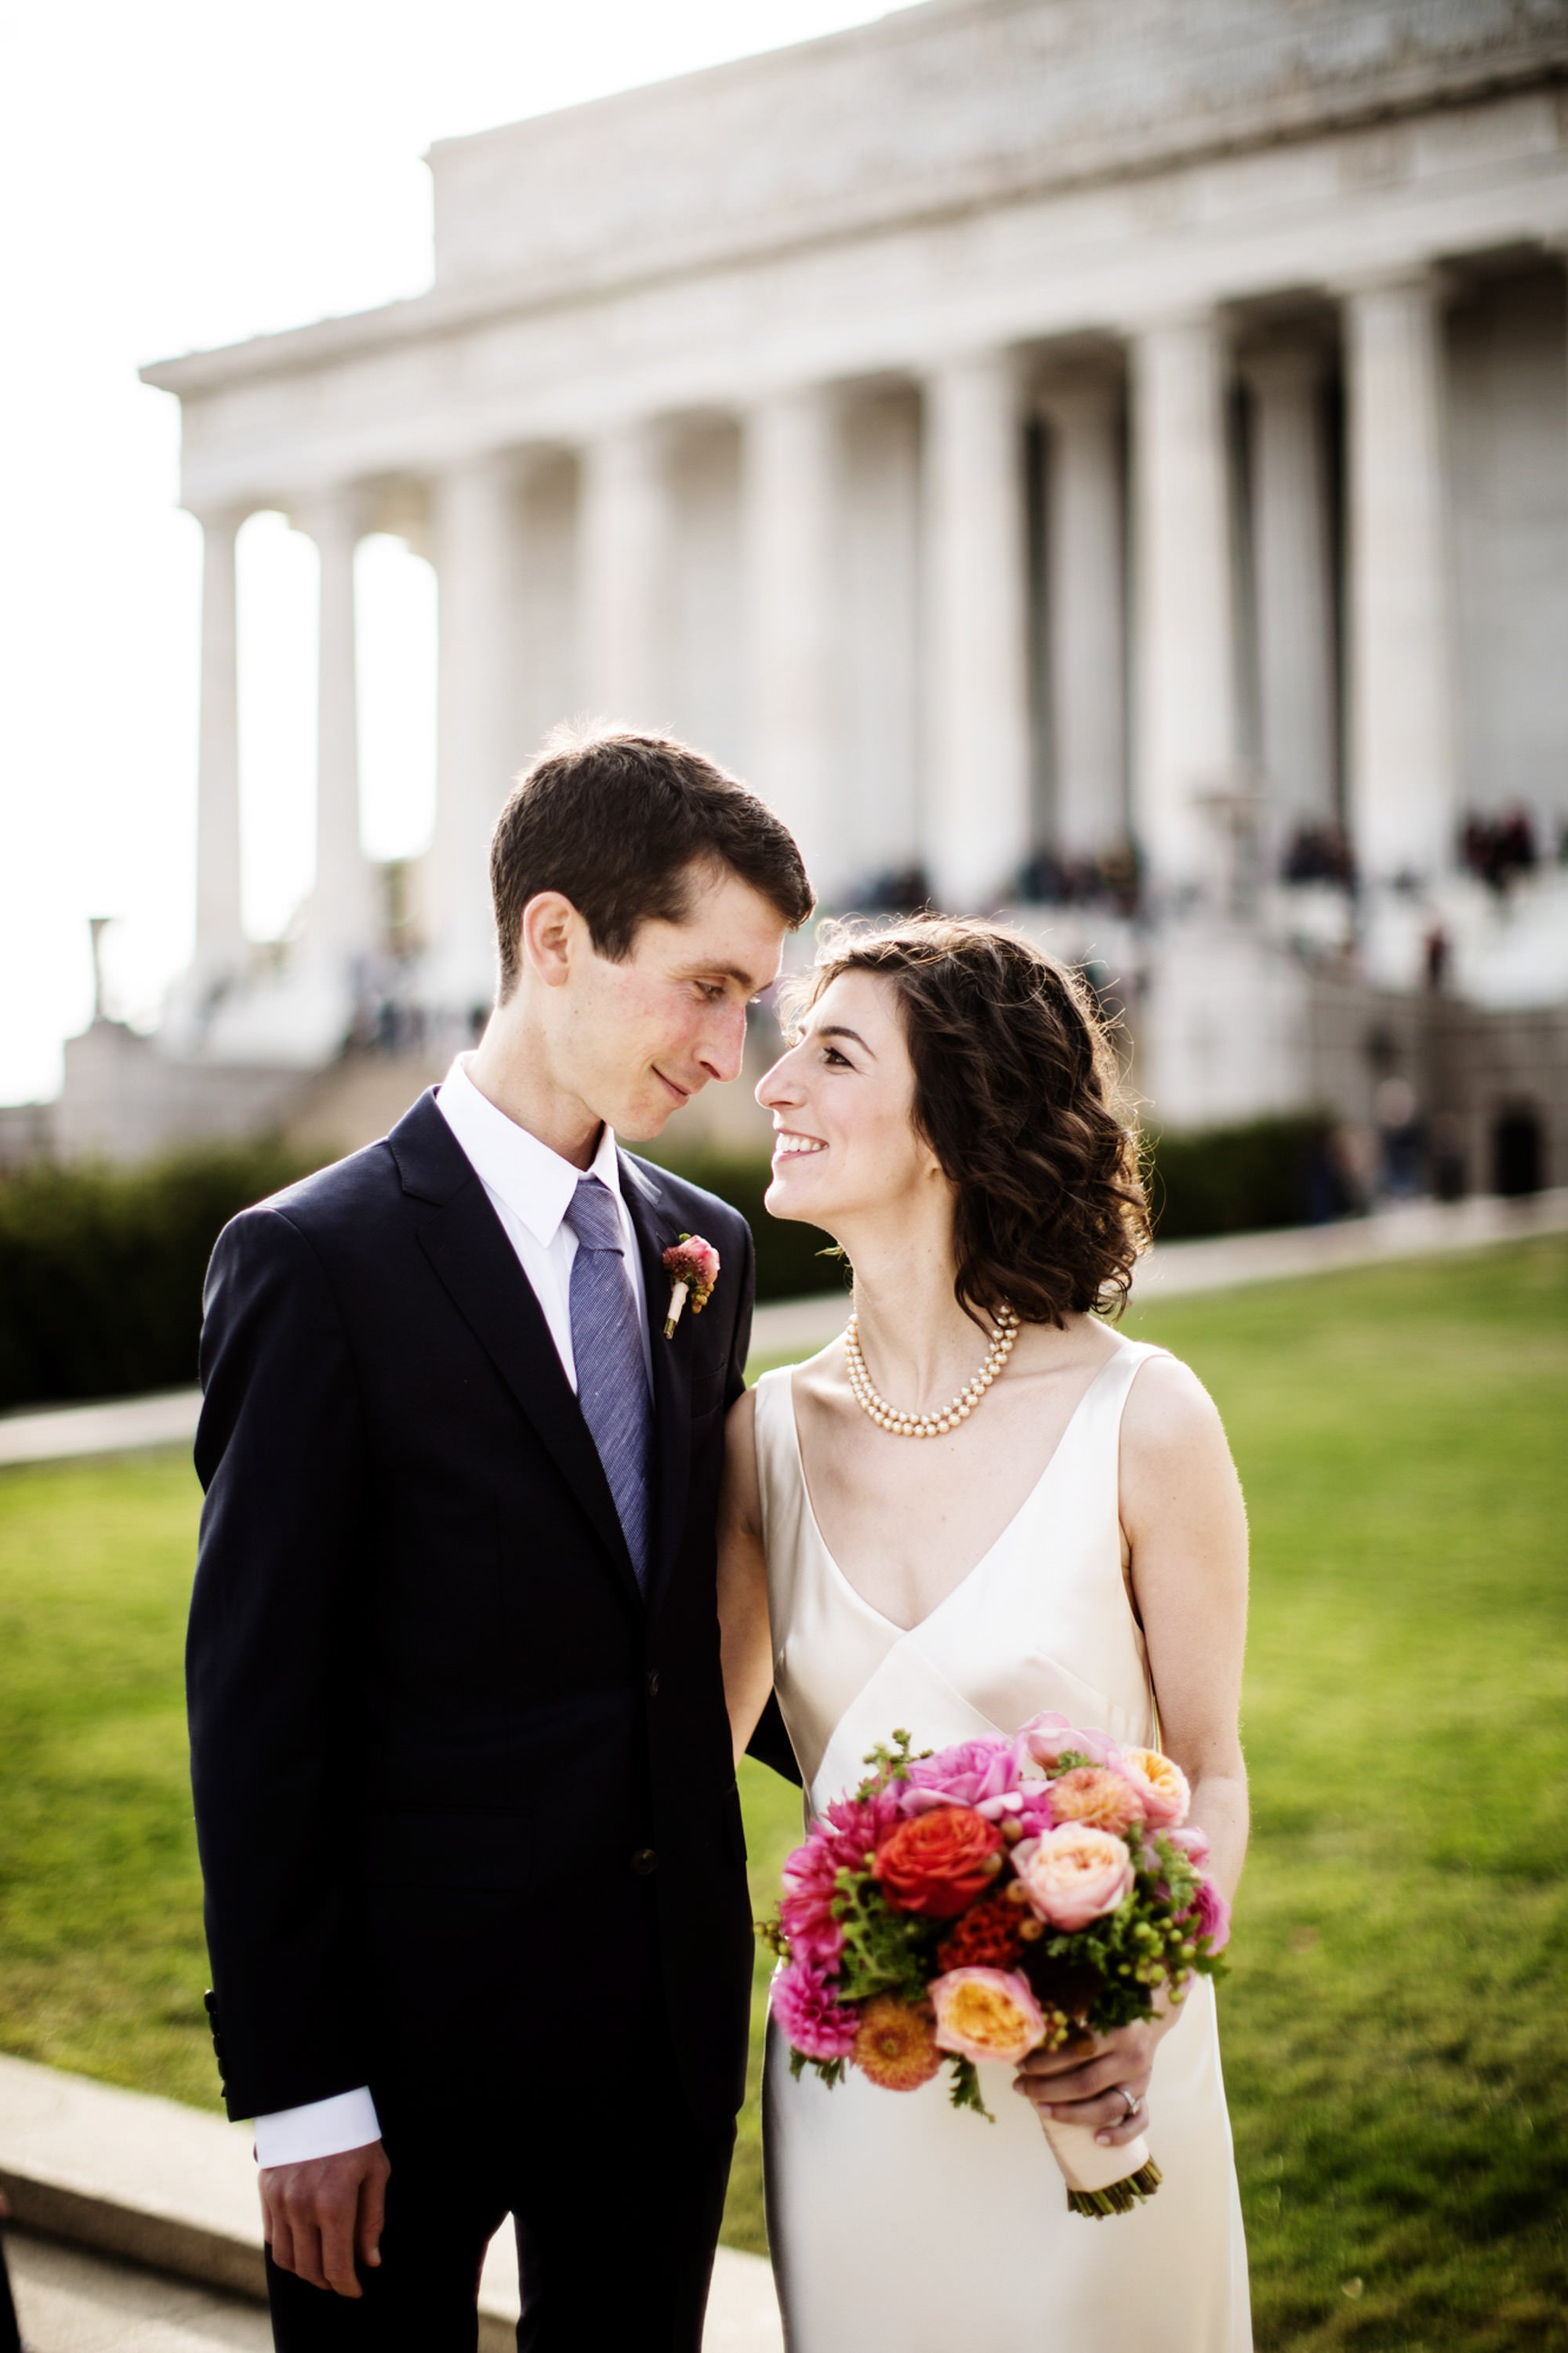 The bride and groom pose for a portrait in front of the Lincoln Memorial in Washington, DC.